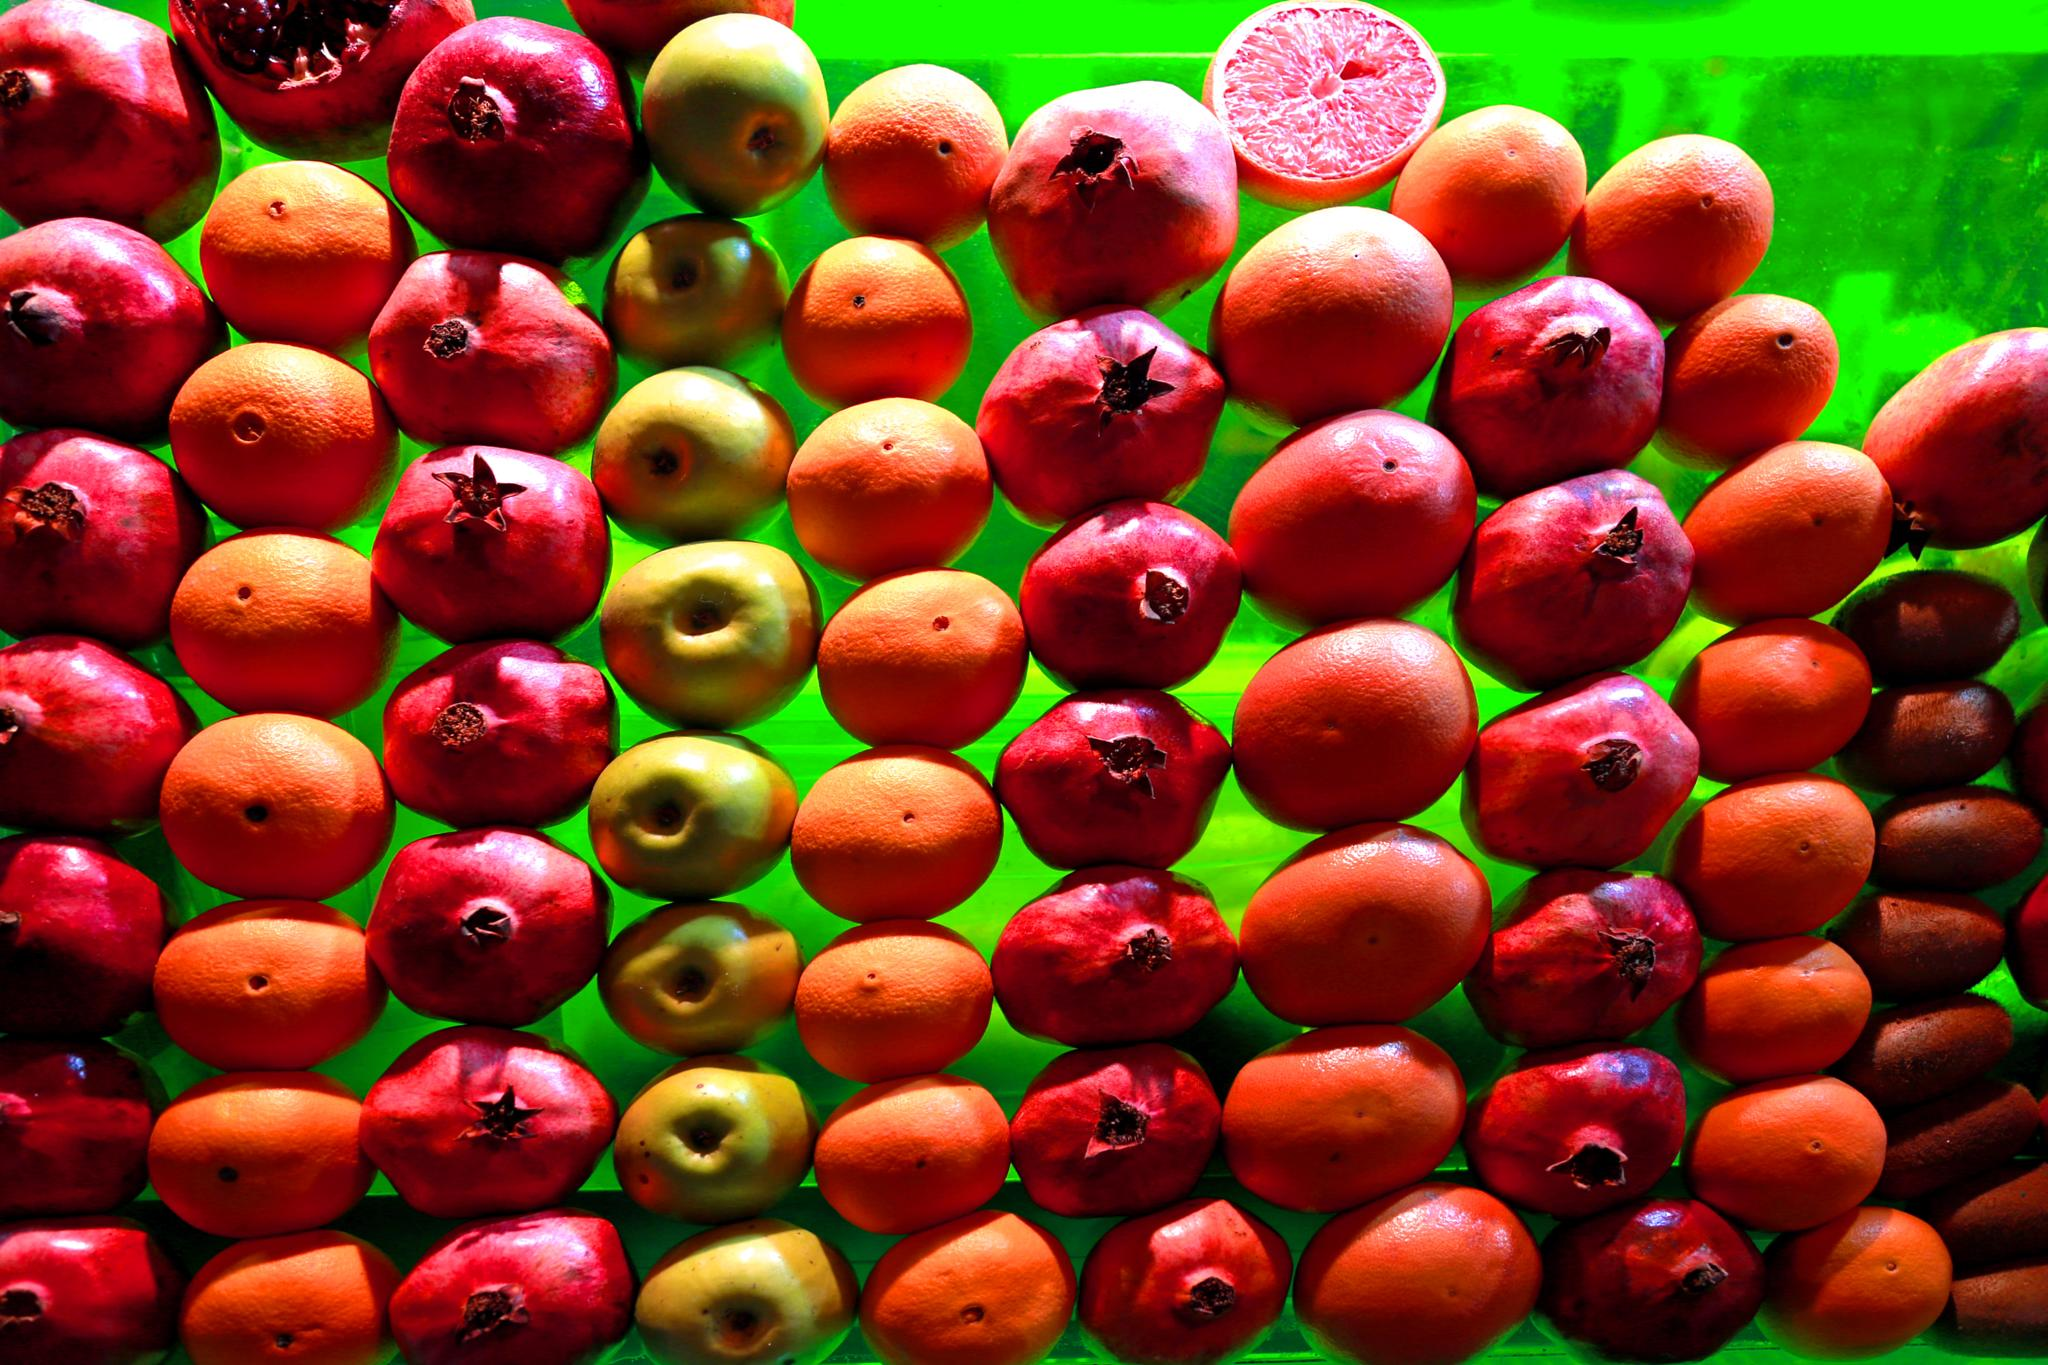 Colorful fruit display by bechara.yared